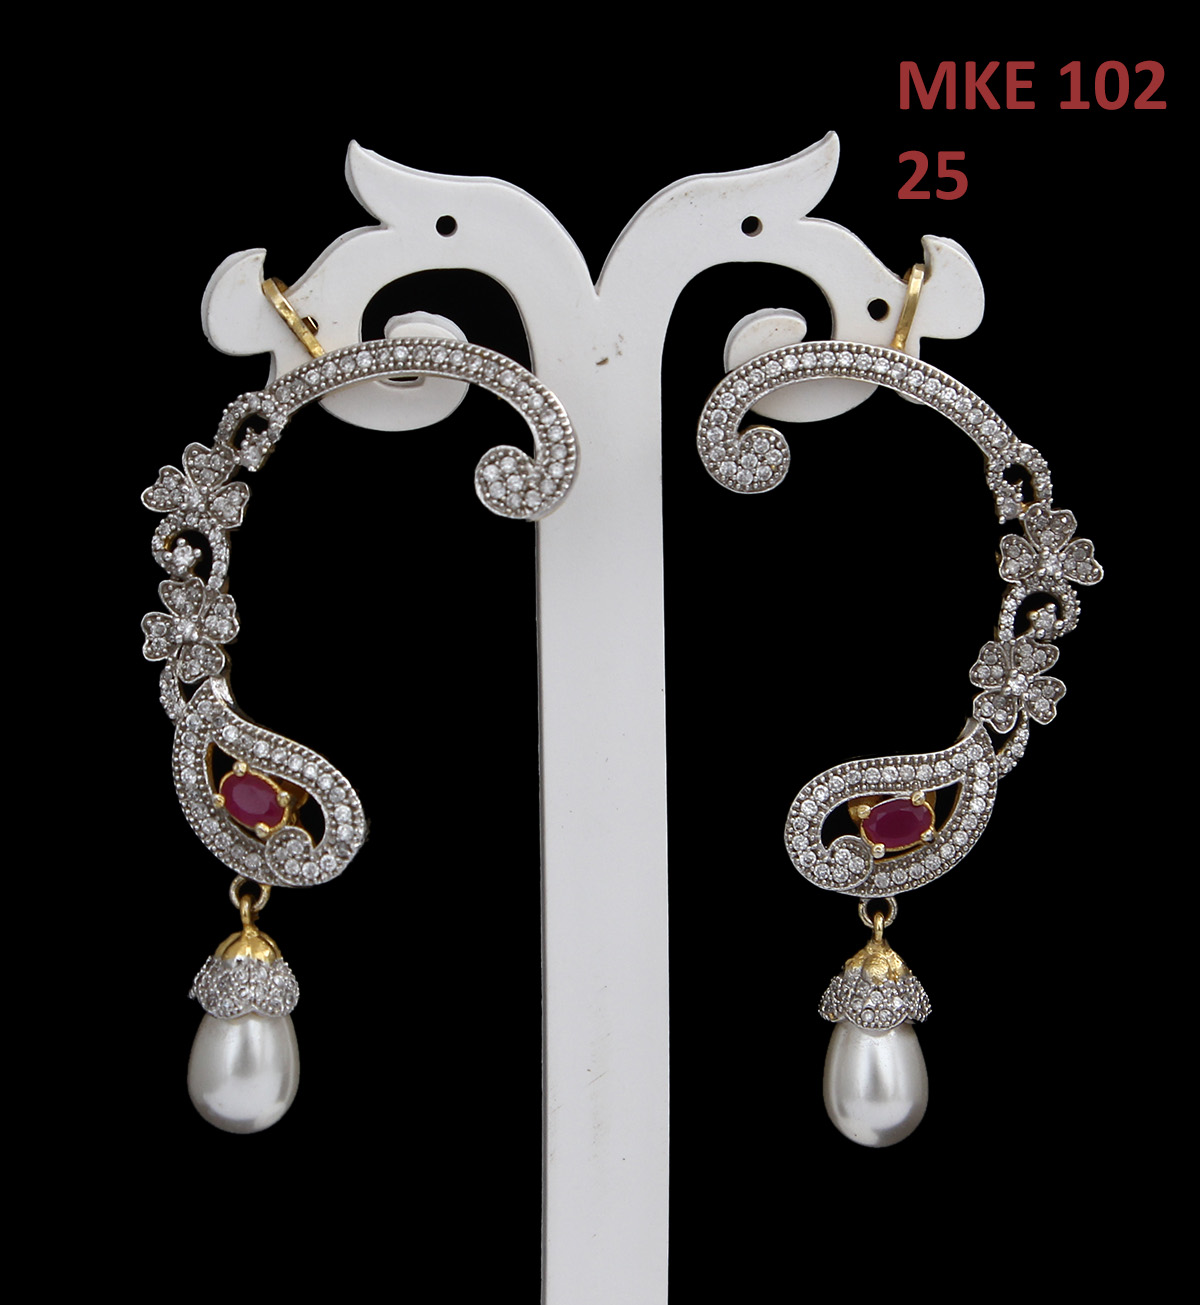 55Carat | 55Carat Modern Ear Cuffs Red Ruby CZ 14K Gold Plated Intricately Studded with Oval Red Ruby Cubic Zircon Pear Floral Style with SIngle Pearl Drop Earrings Jewellery for Women and Girls